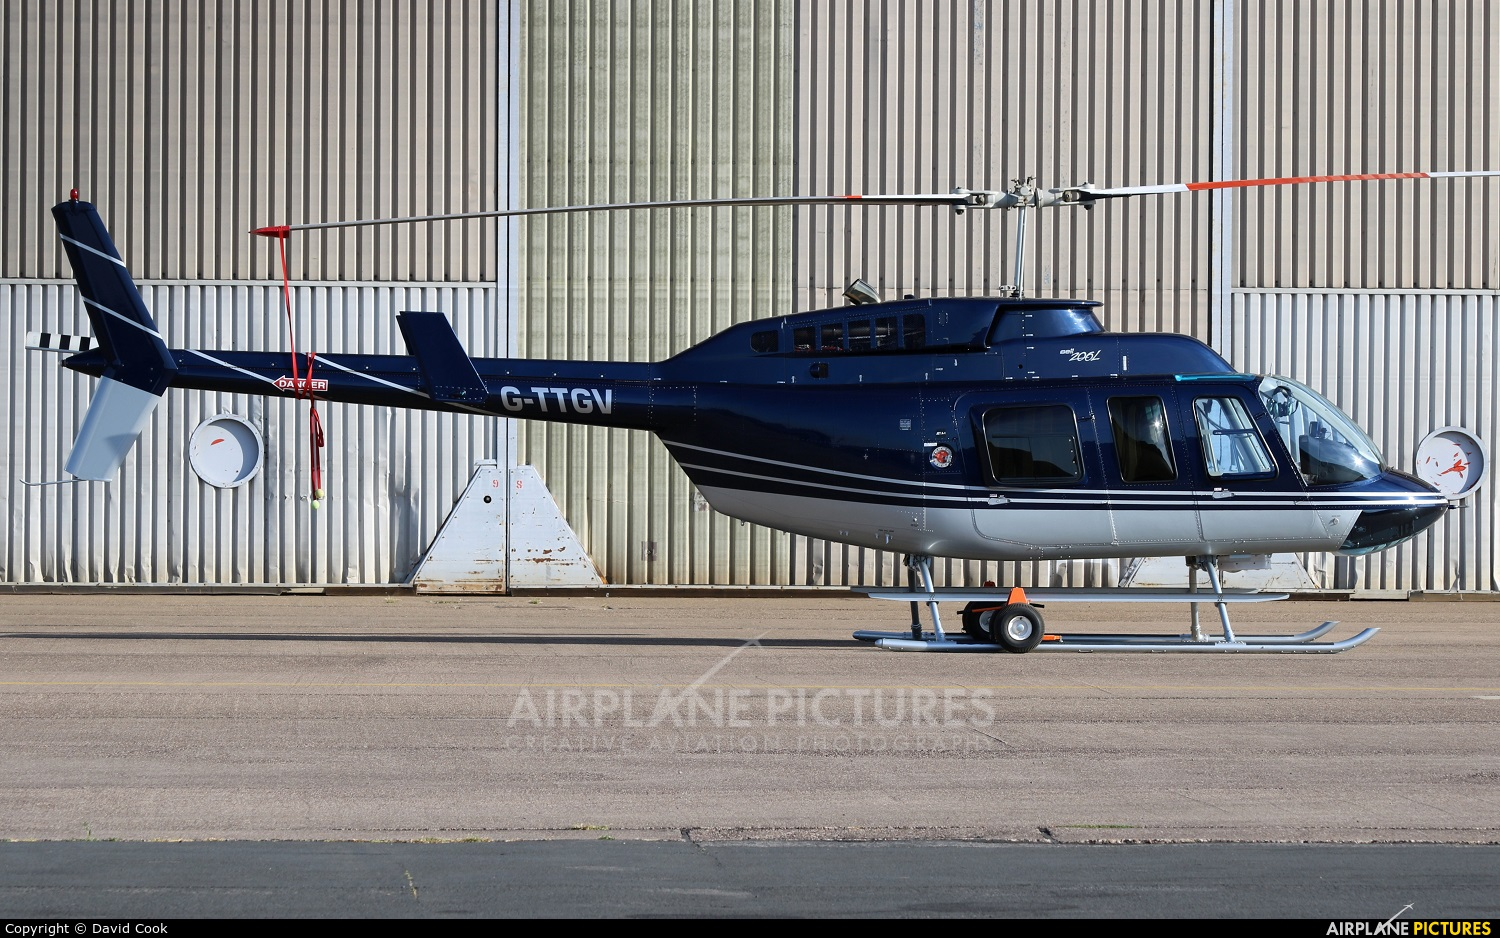 Private G-TTGV aircraft at East Midlands